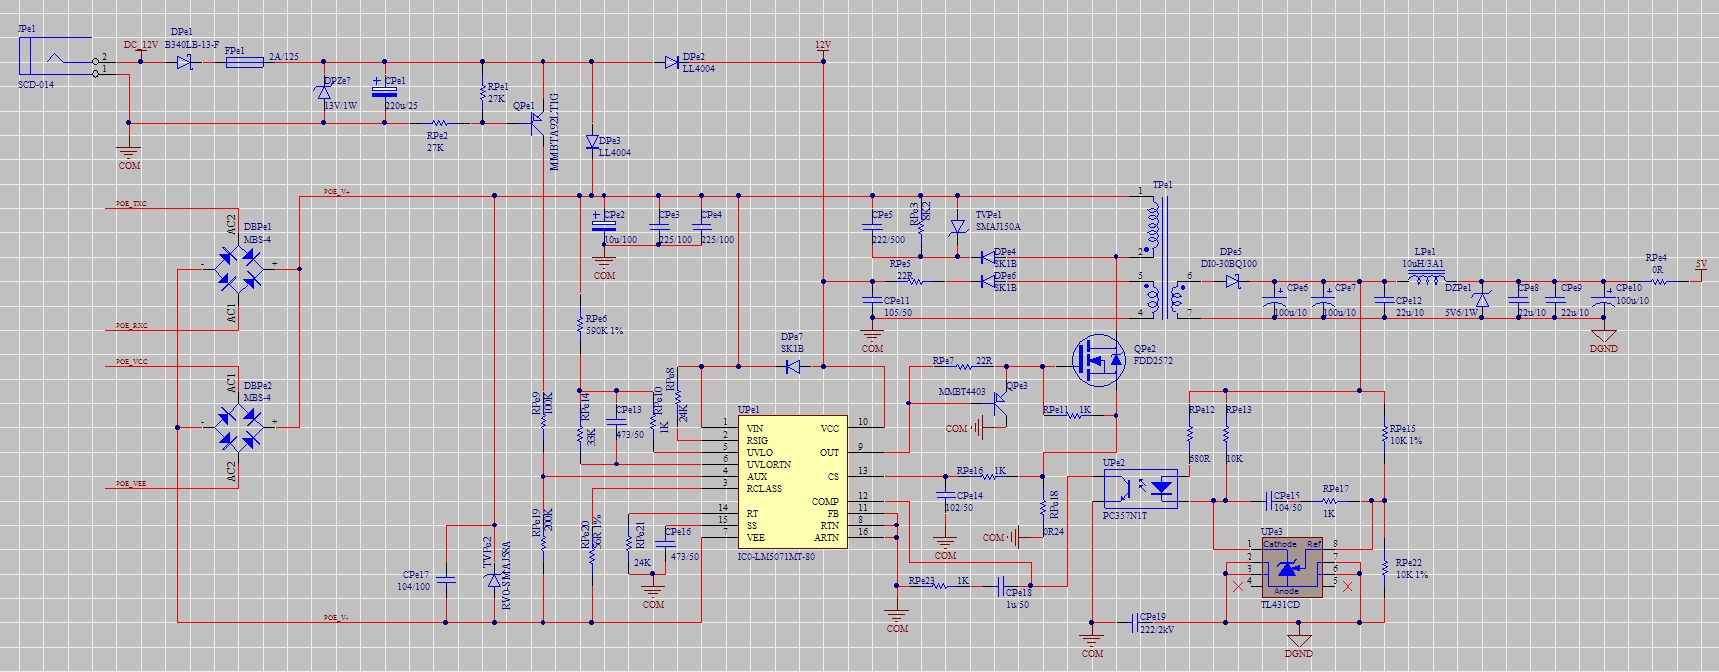 Awesome Magicar 902 Pinout Photos - Electrical Diagram Ideas - itseo ...